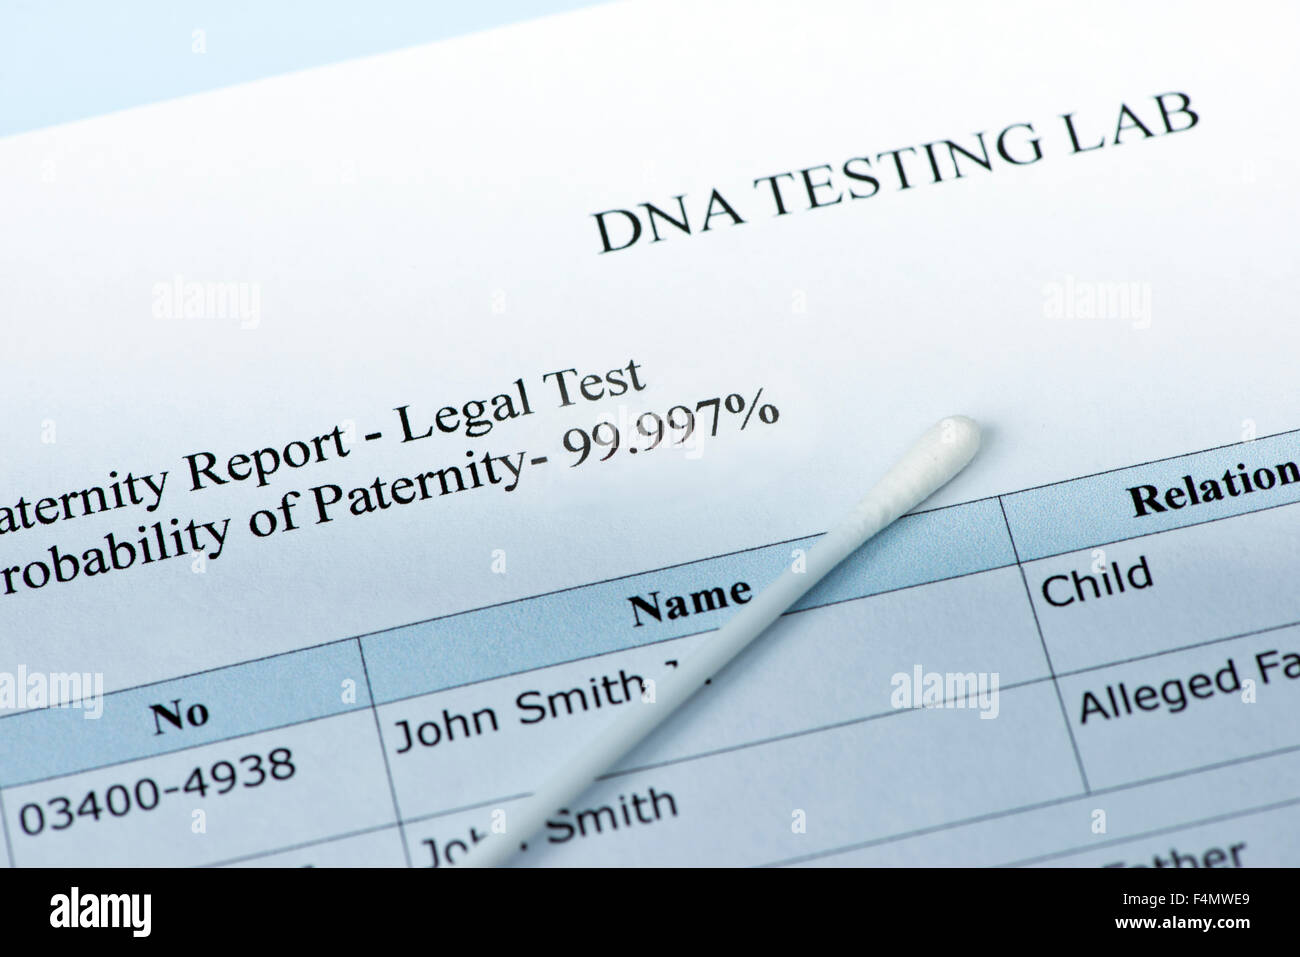 Paternity test results with lab sample swab stock photo 88969505 paternity test results with lab sample swab stock photo 88969505 alamy thecheapjerseys Gallery